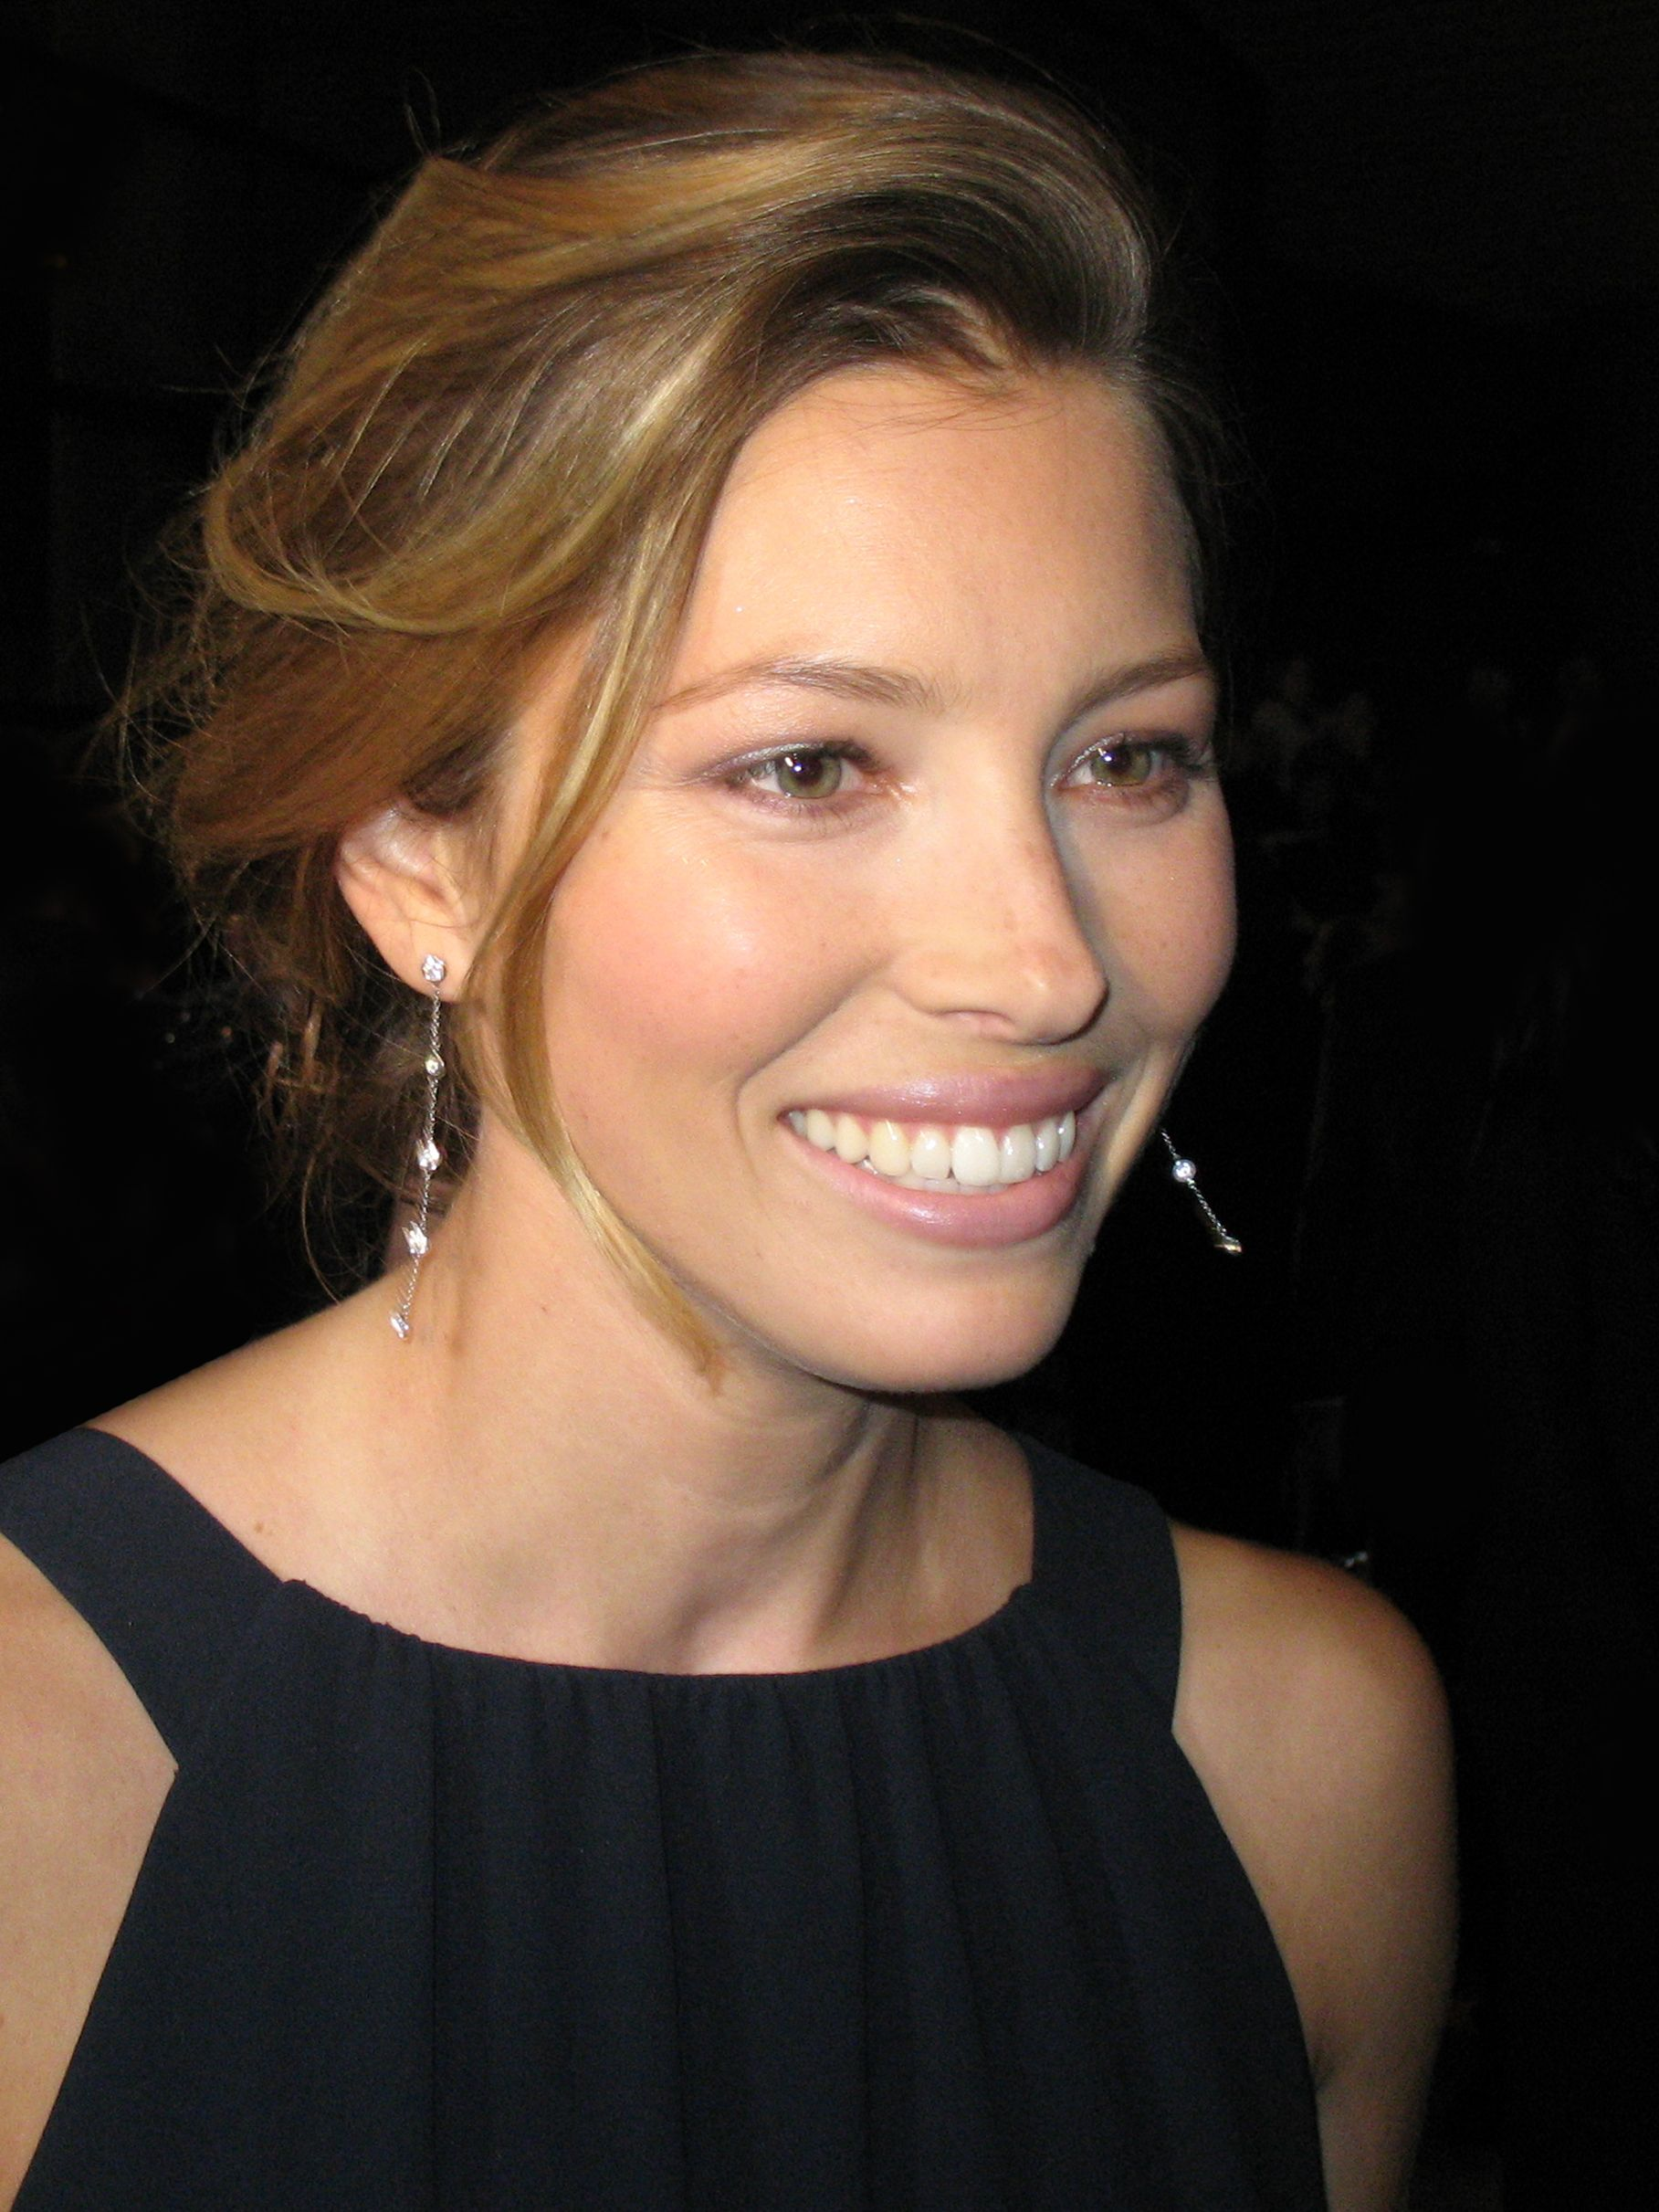 Pin By Sheri Dymeck On Jessica Biel Jessica Biel Amy Poehler